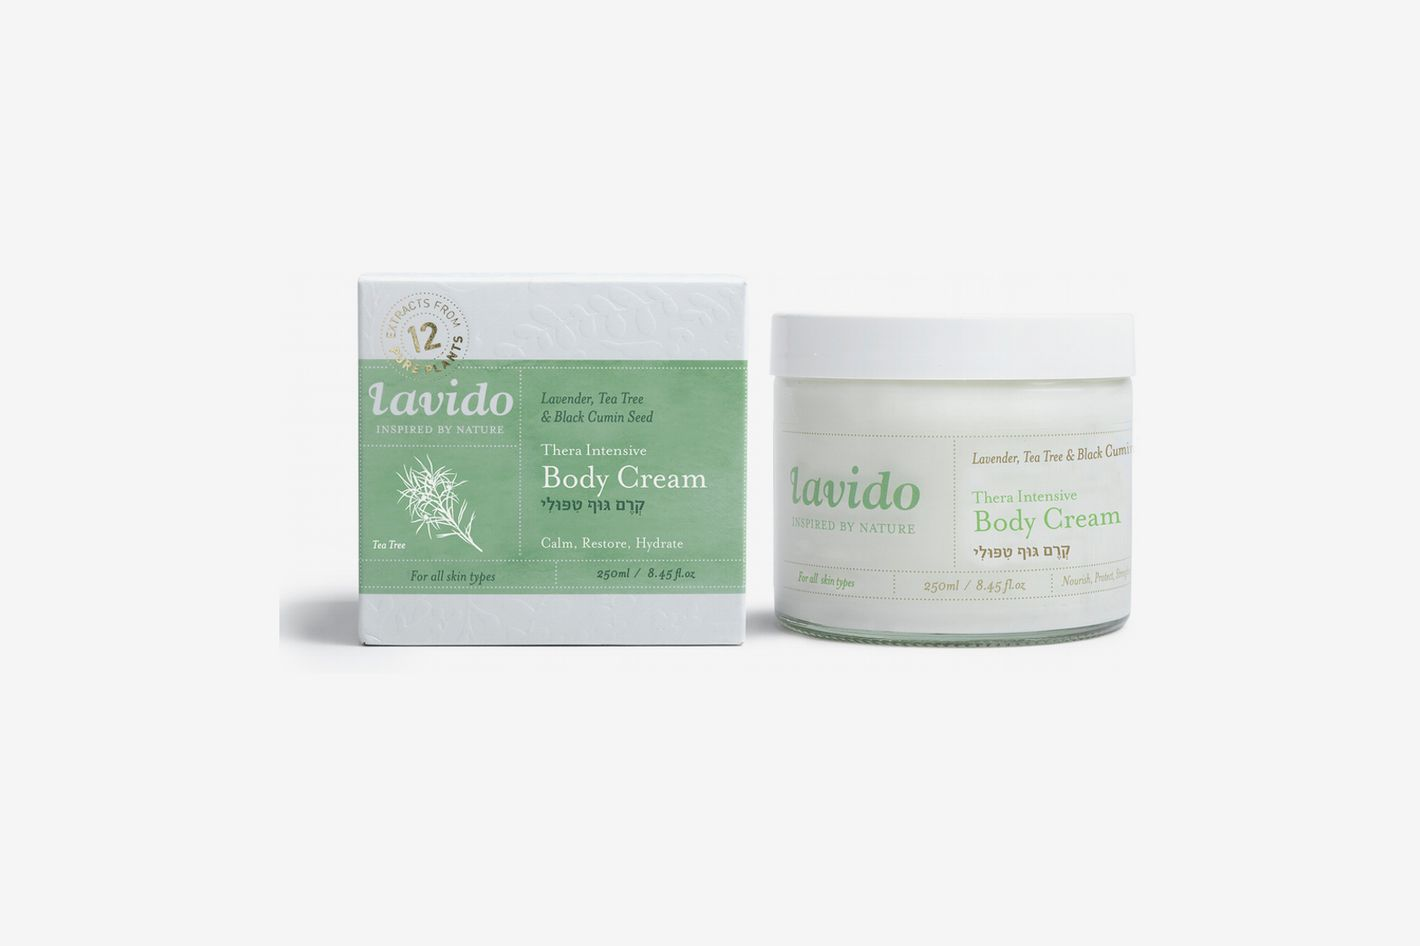 Lavido Thera-Intensive Body Cream